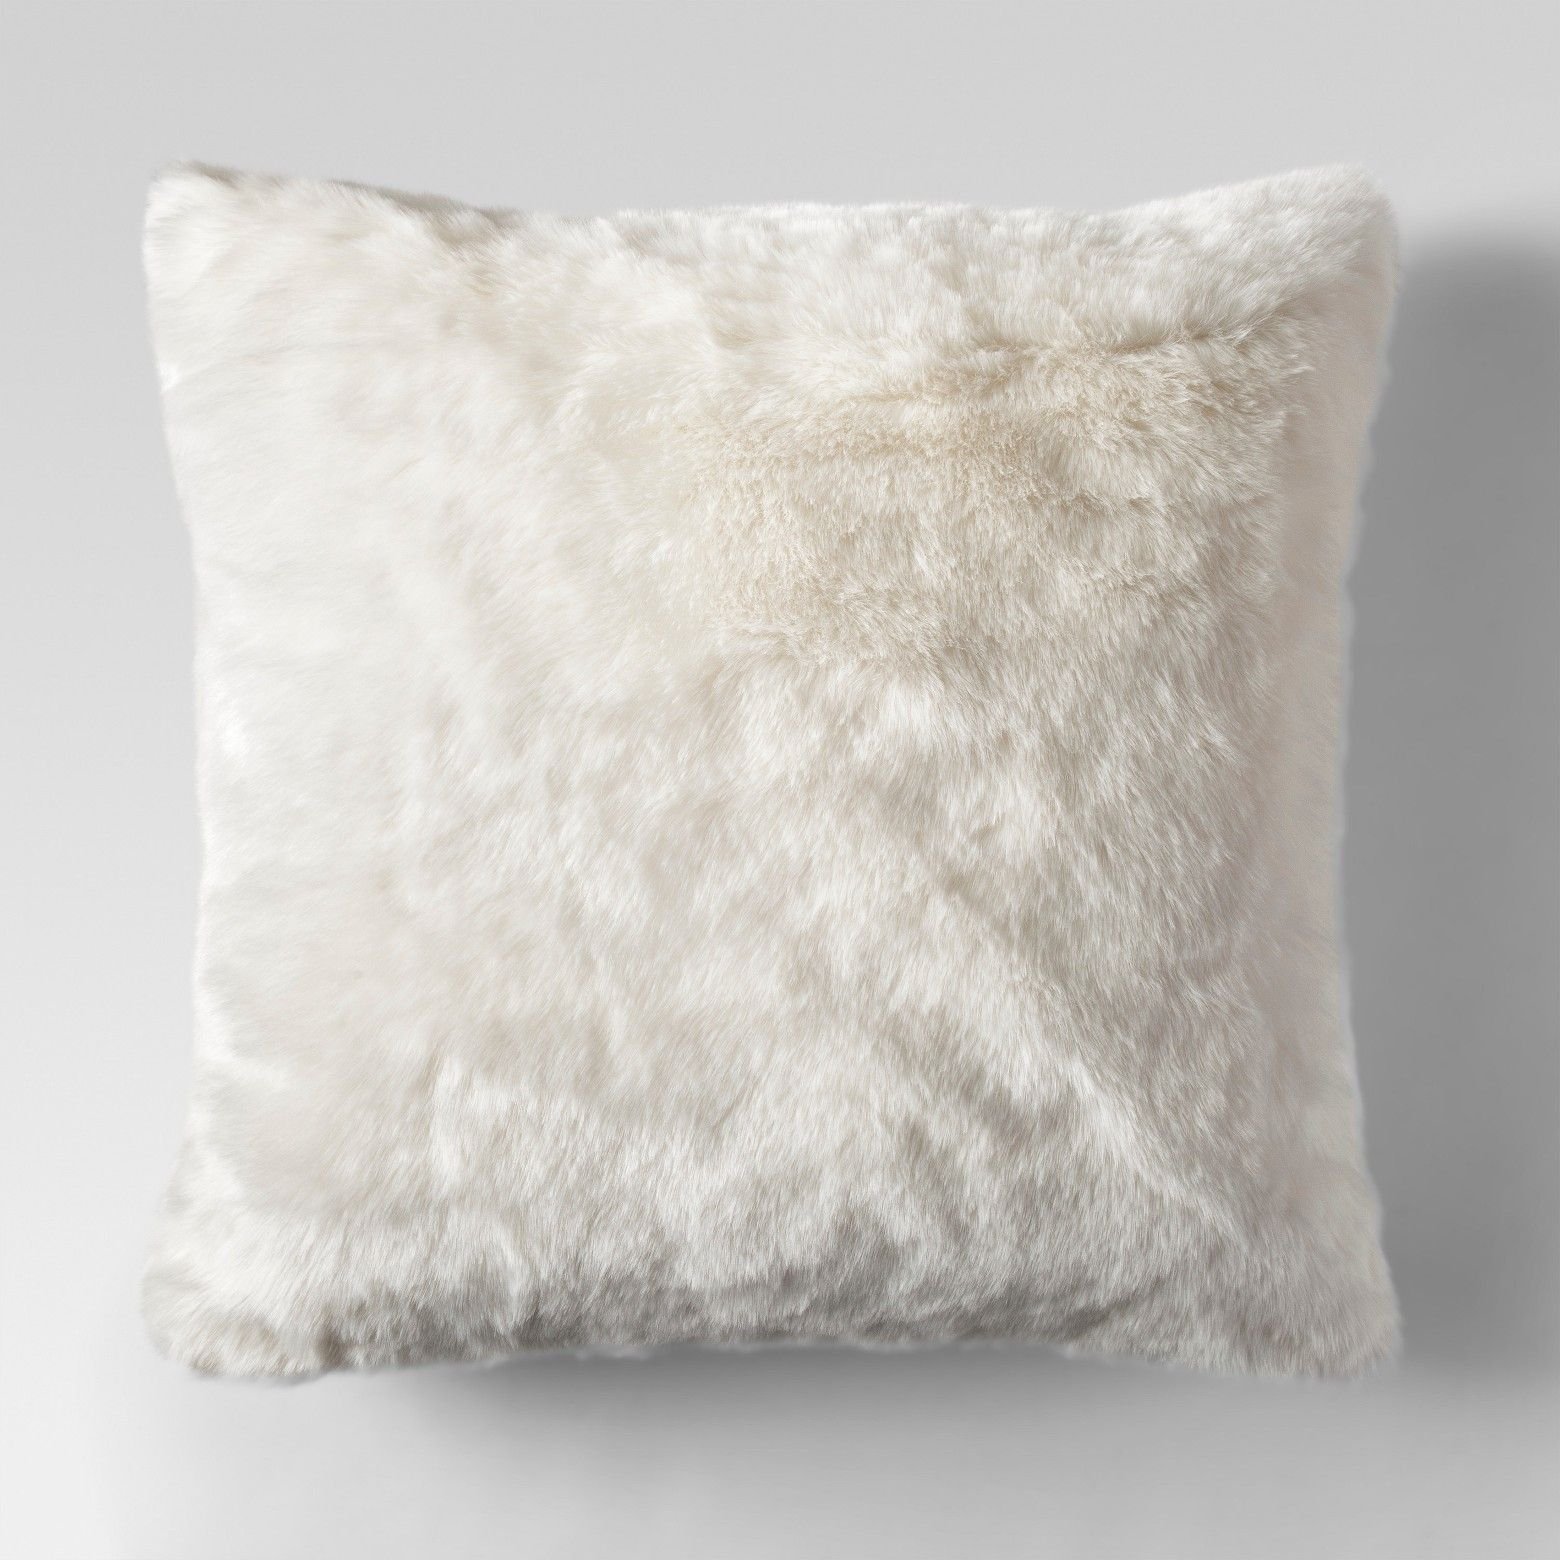 fur cushions product pillow auskin throw curly square ivory tibetan lambskin fibre pillows iy white by